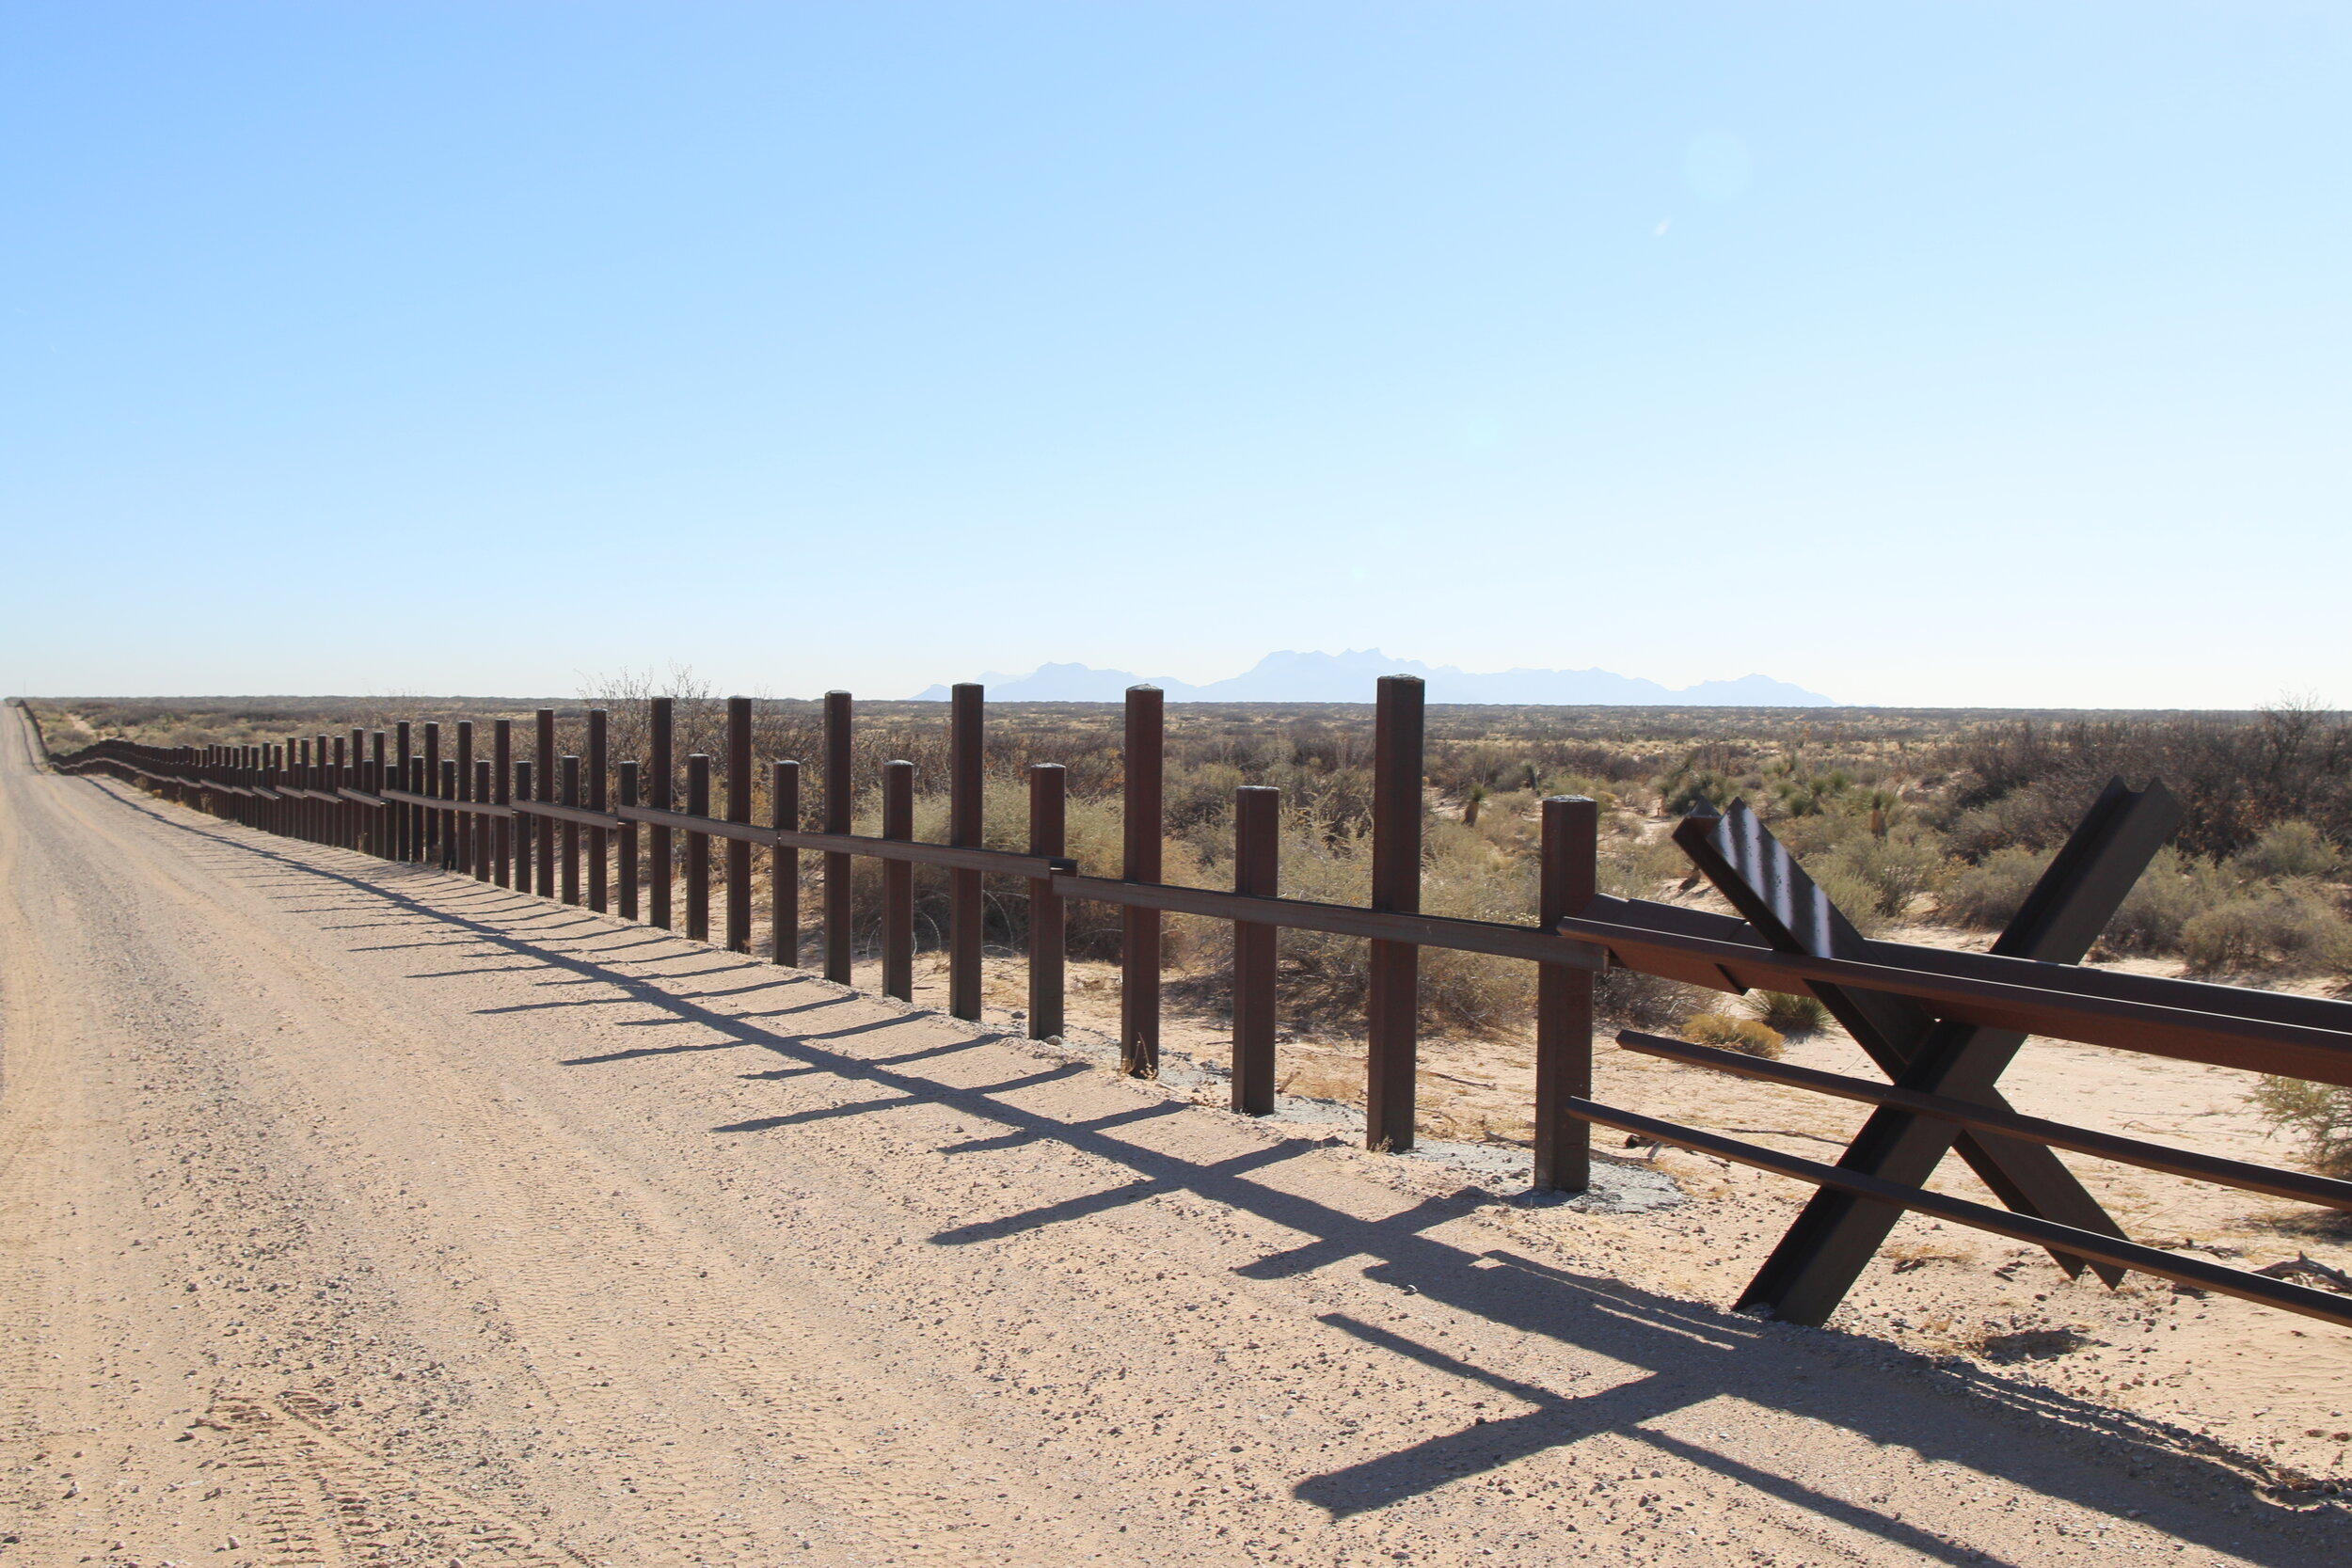 An example of the old vehicle barrier before the construction of Trump's wall in the El Paso sector